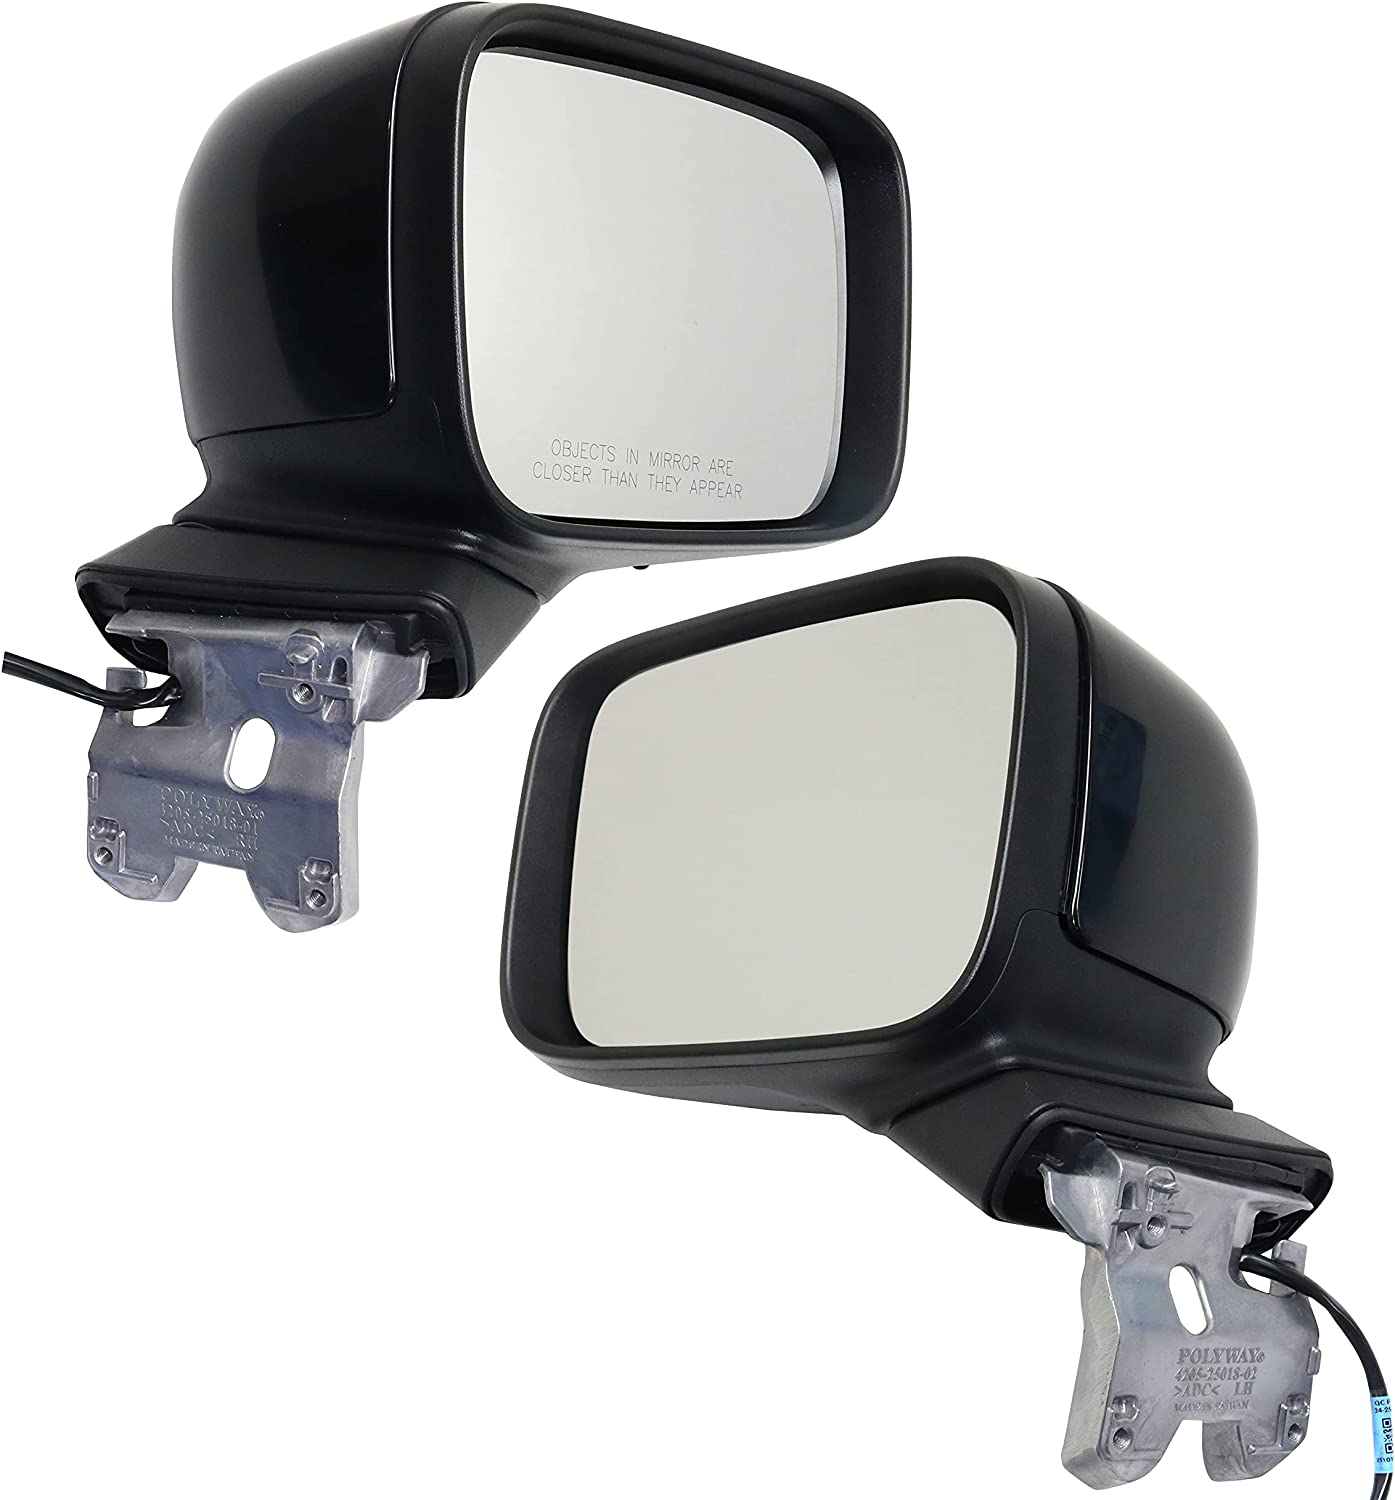 Kool Vue Mirror Set of 2 Max 48% OFF A surprise price is realized Renegade Compatible Jeep 2015-2020 with